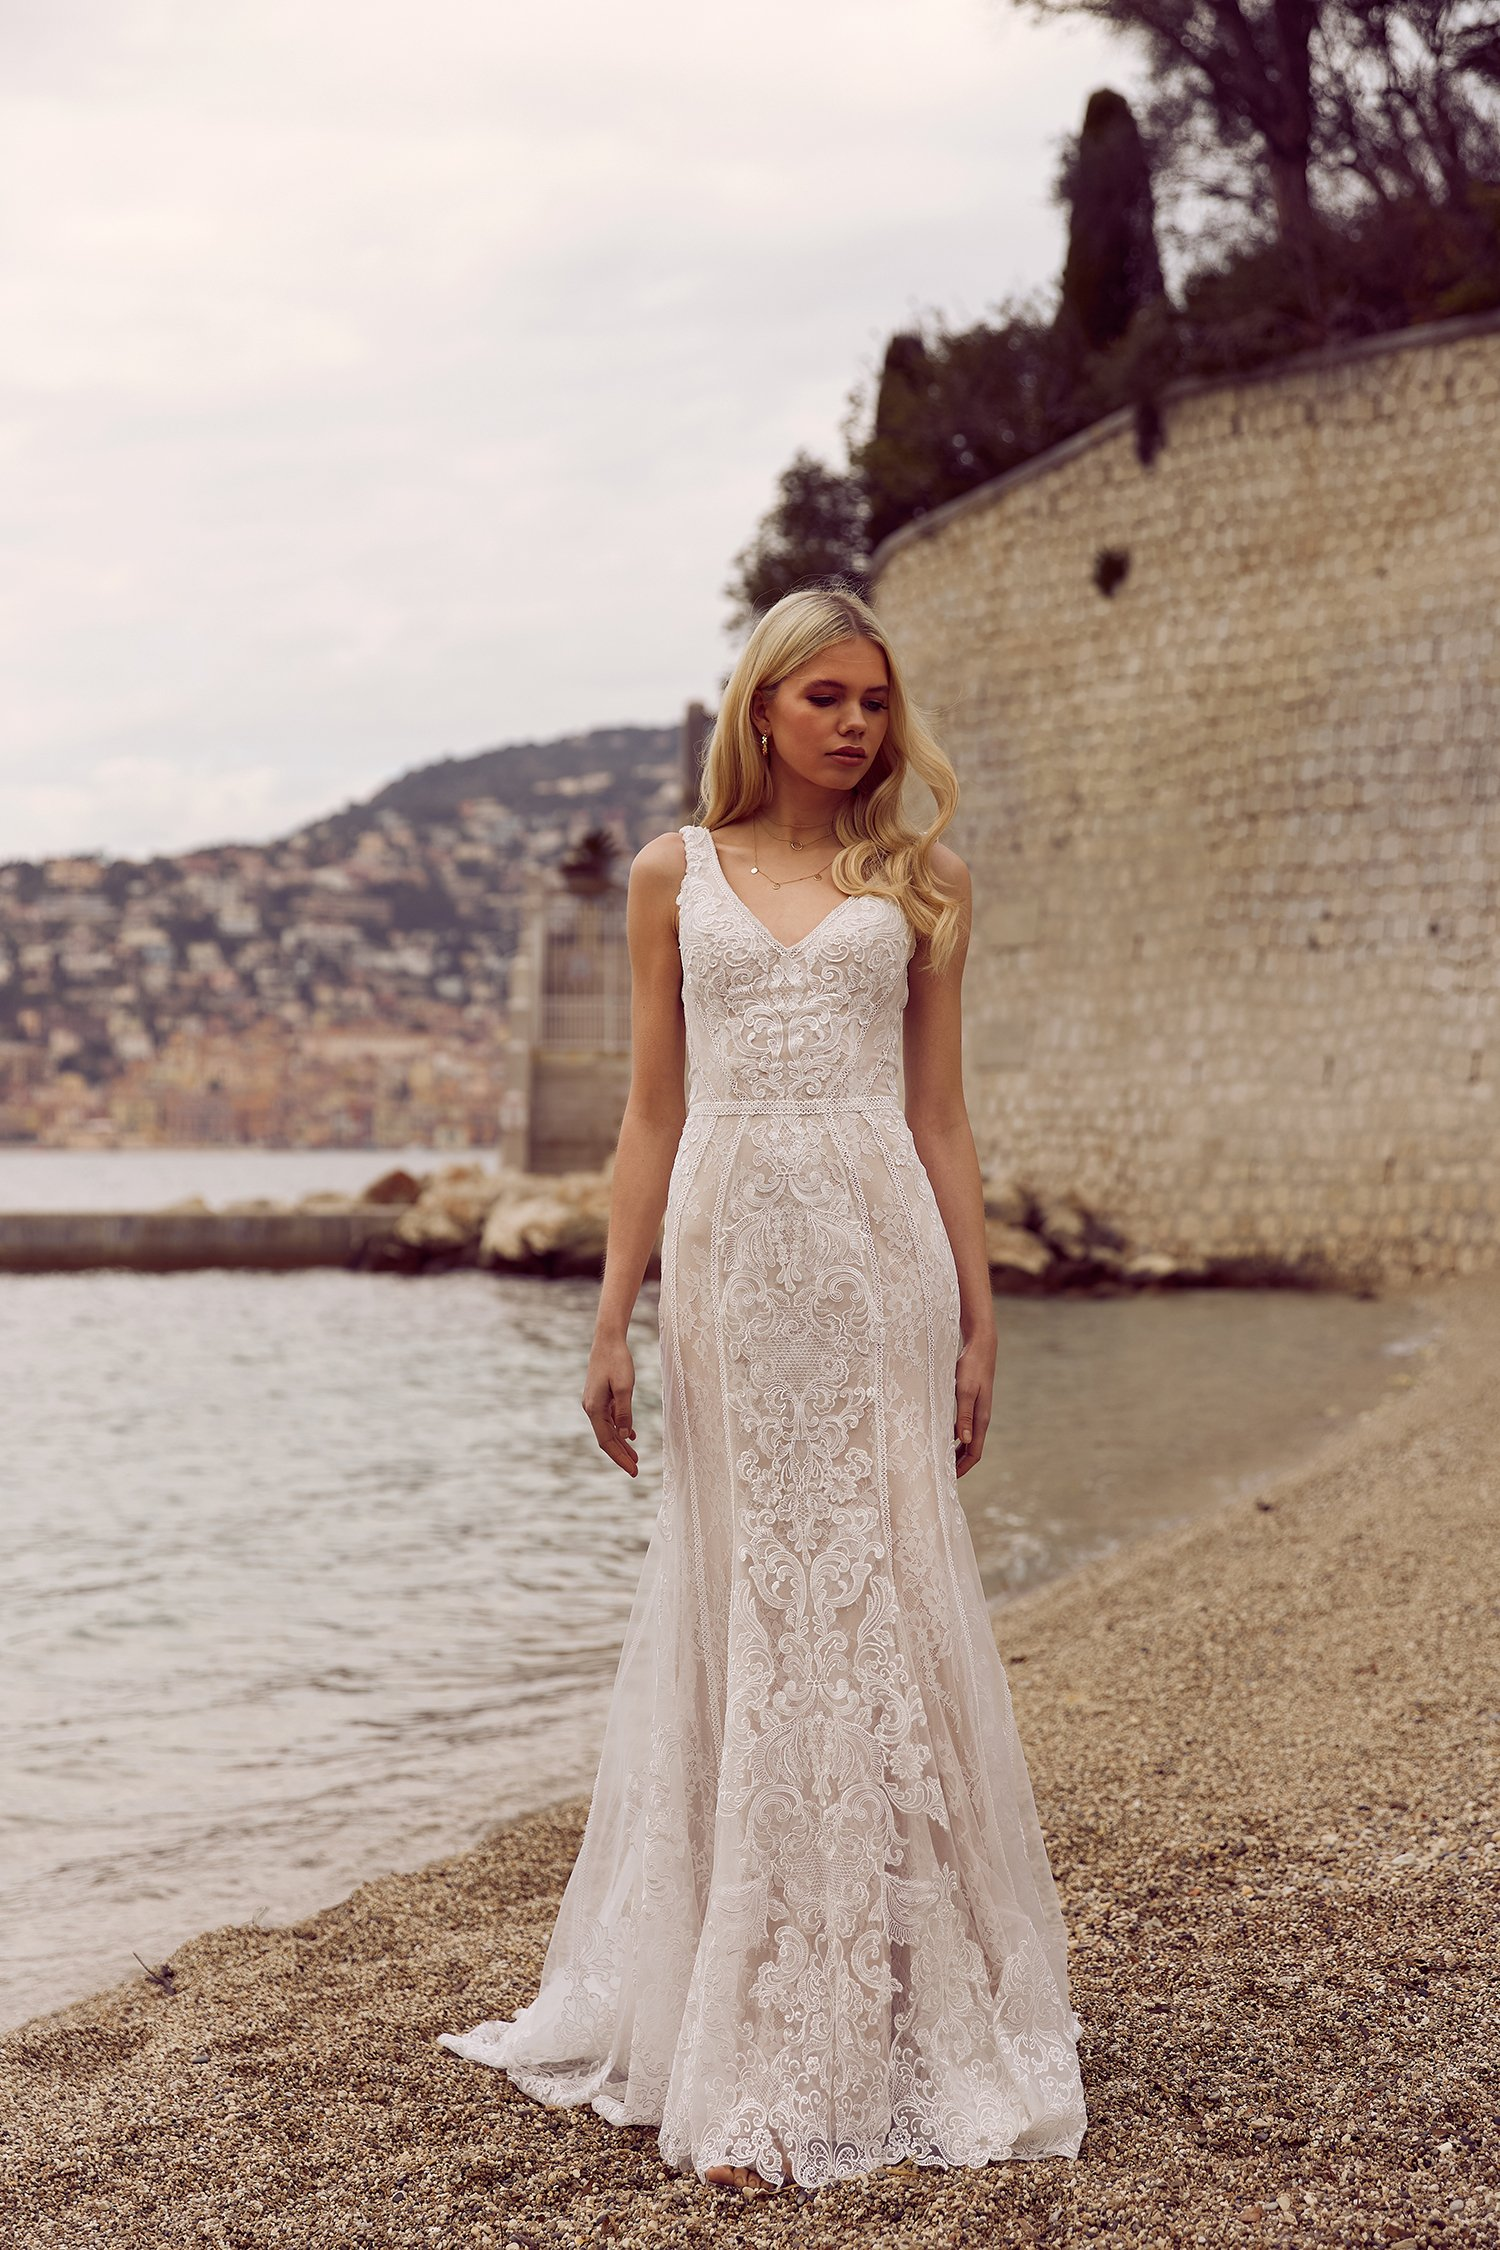 RAYA-ML6818-FITTED-LACE-GOWN-WITH-V-NECK-STRAPS-AND-FULL-LACE-TRAIN-WEDDING-DRESS-MADI-LANE-BRIDAL1